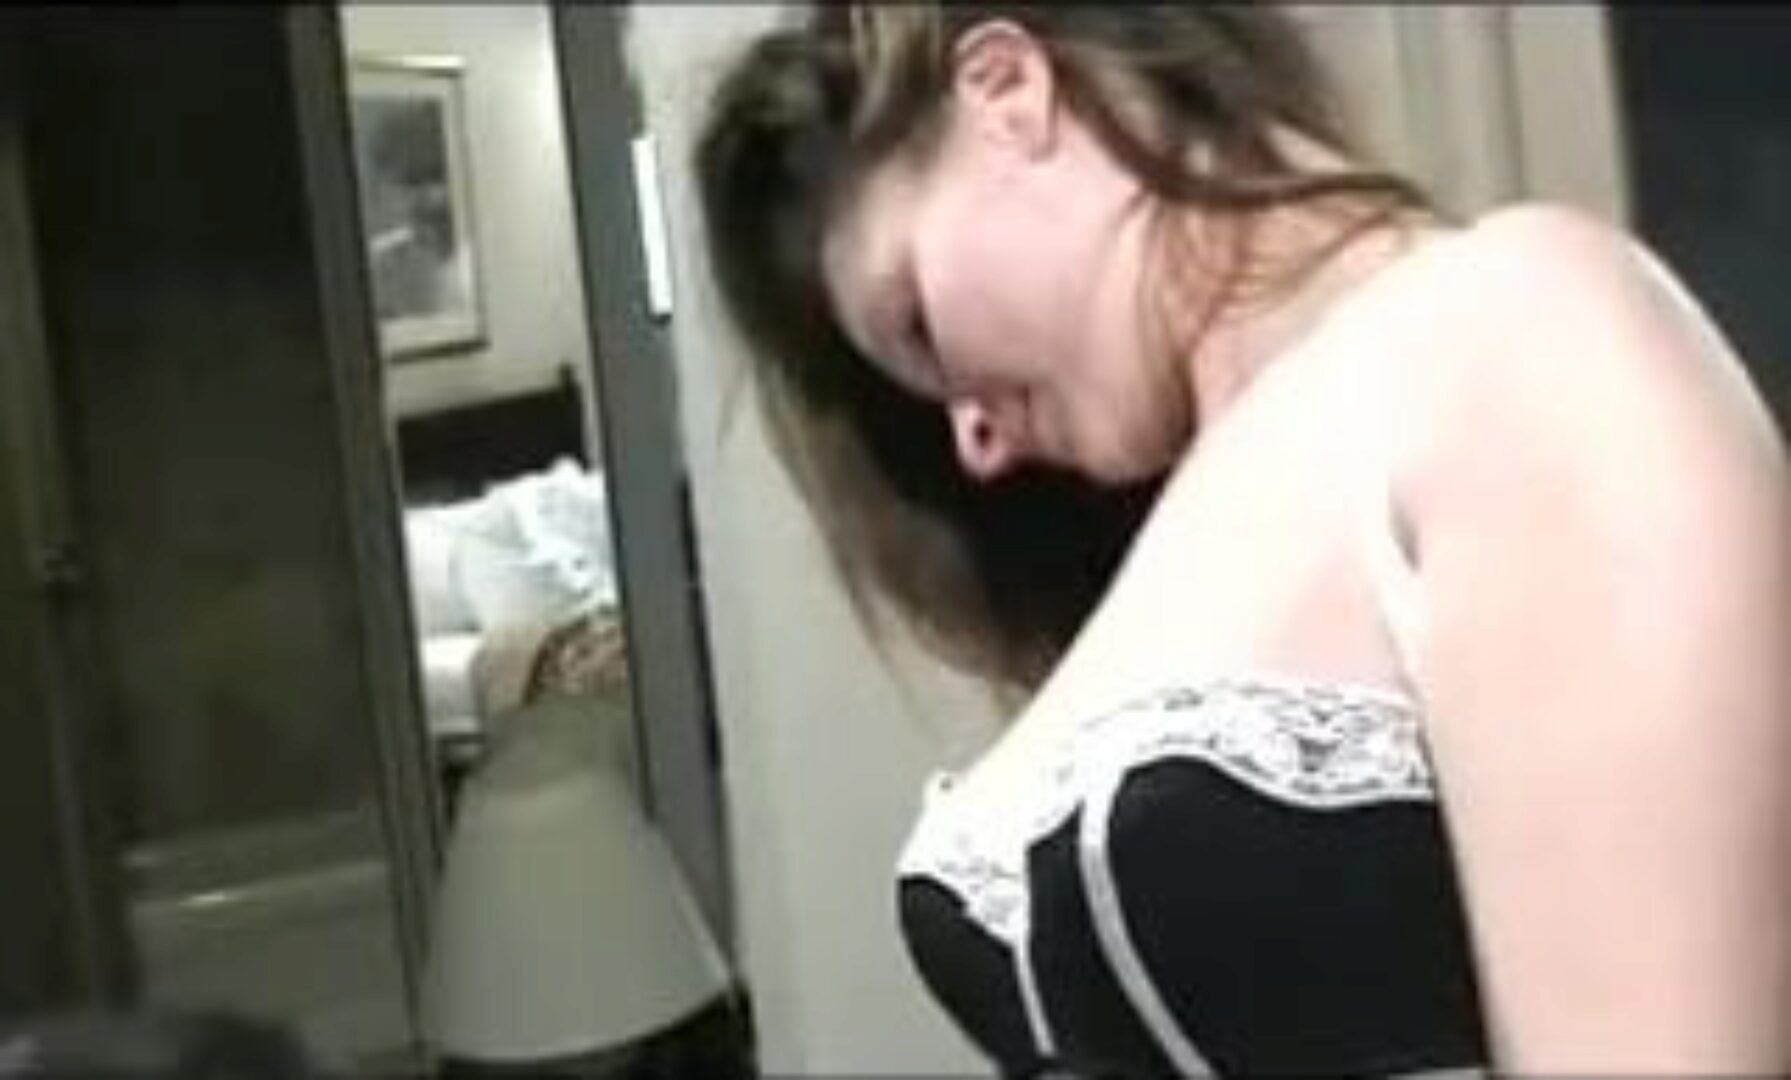 Member's Wife Getting Some - Free Porn Videos - YouPorn Watch Member's Wife Getting Some online on YouPorn.com. YouPorn is the thickest Big Dick porno movie web page with the greatest selection of free-for-all high quality dfw episodes Enjoy our HD porn clips on any contraption of your choosing!